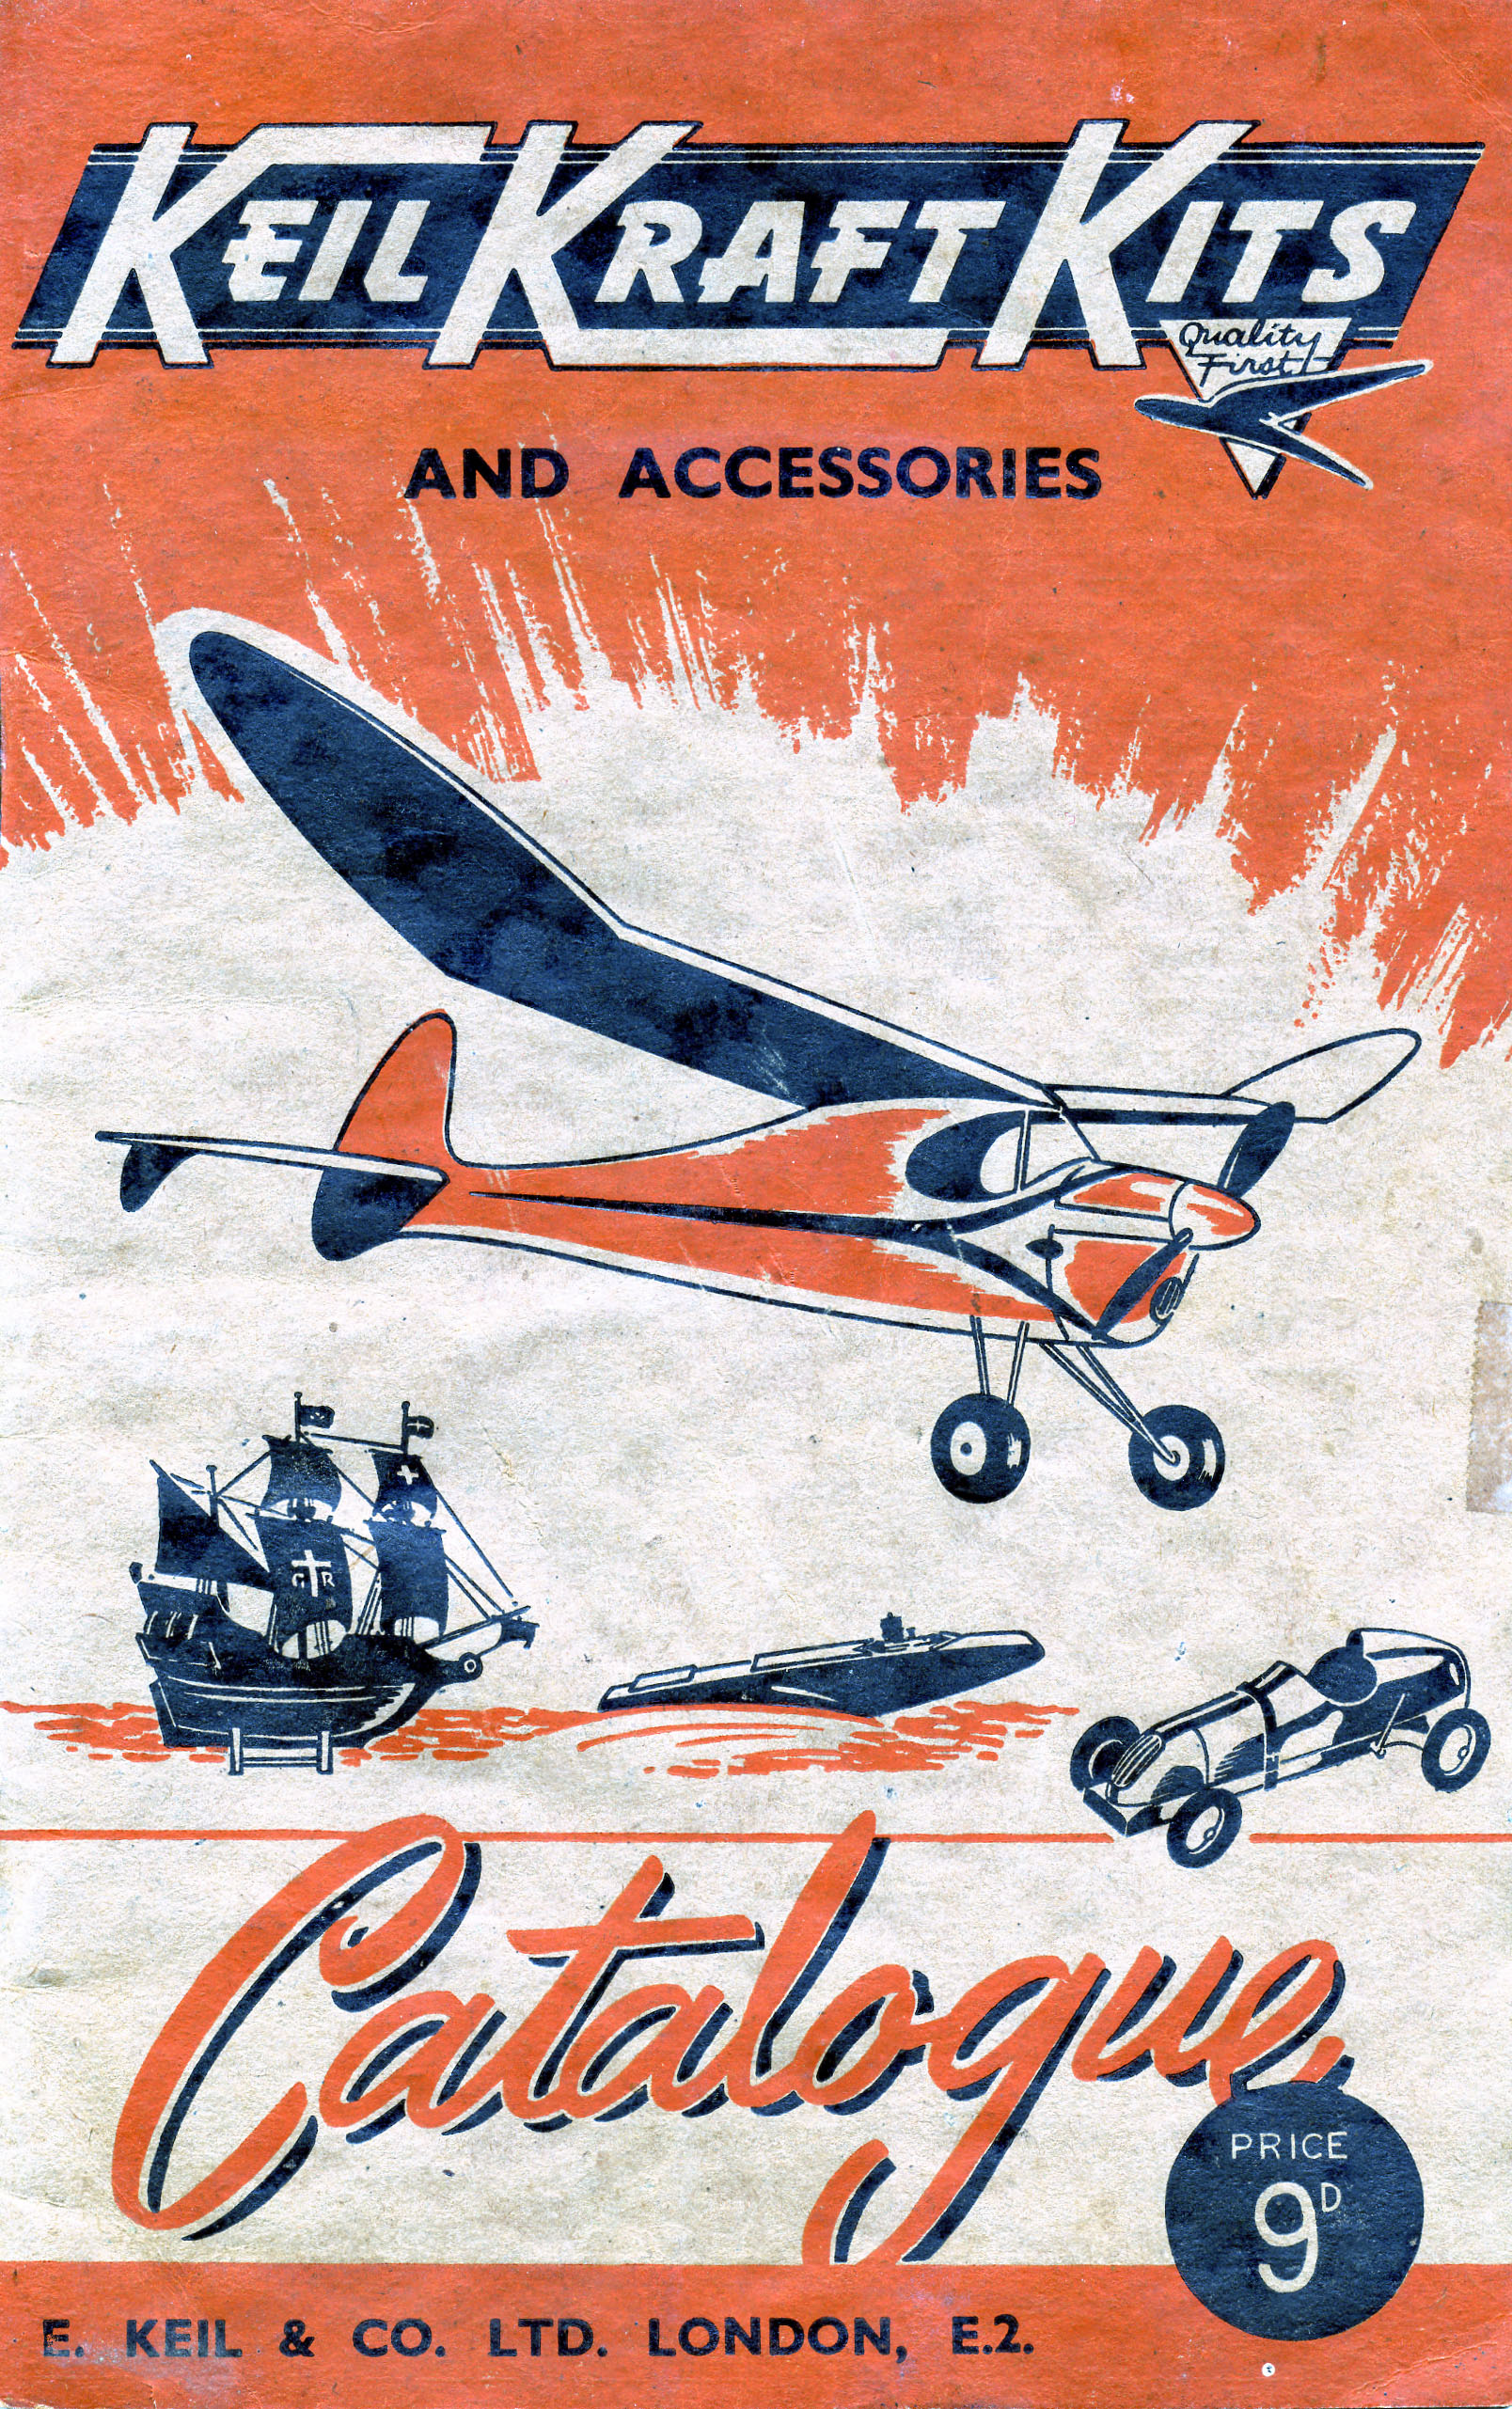 Catalog, Keil Kraft Kits and Accessories, E. Keil & Co. Ltd, 1948. (Source: National Model Aviation Museum Archives, Manufacturers and Companies Collection #0043)